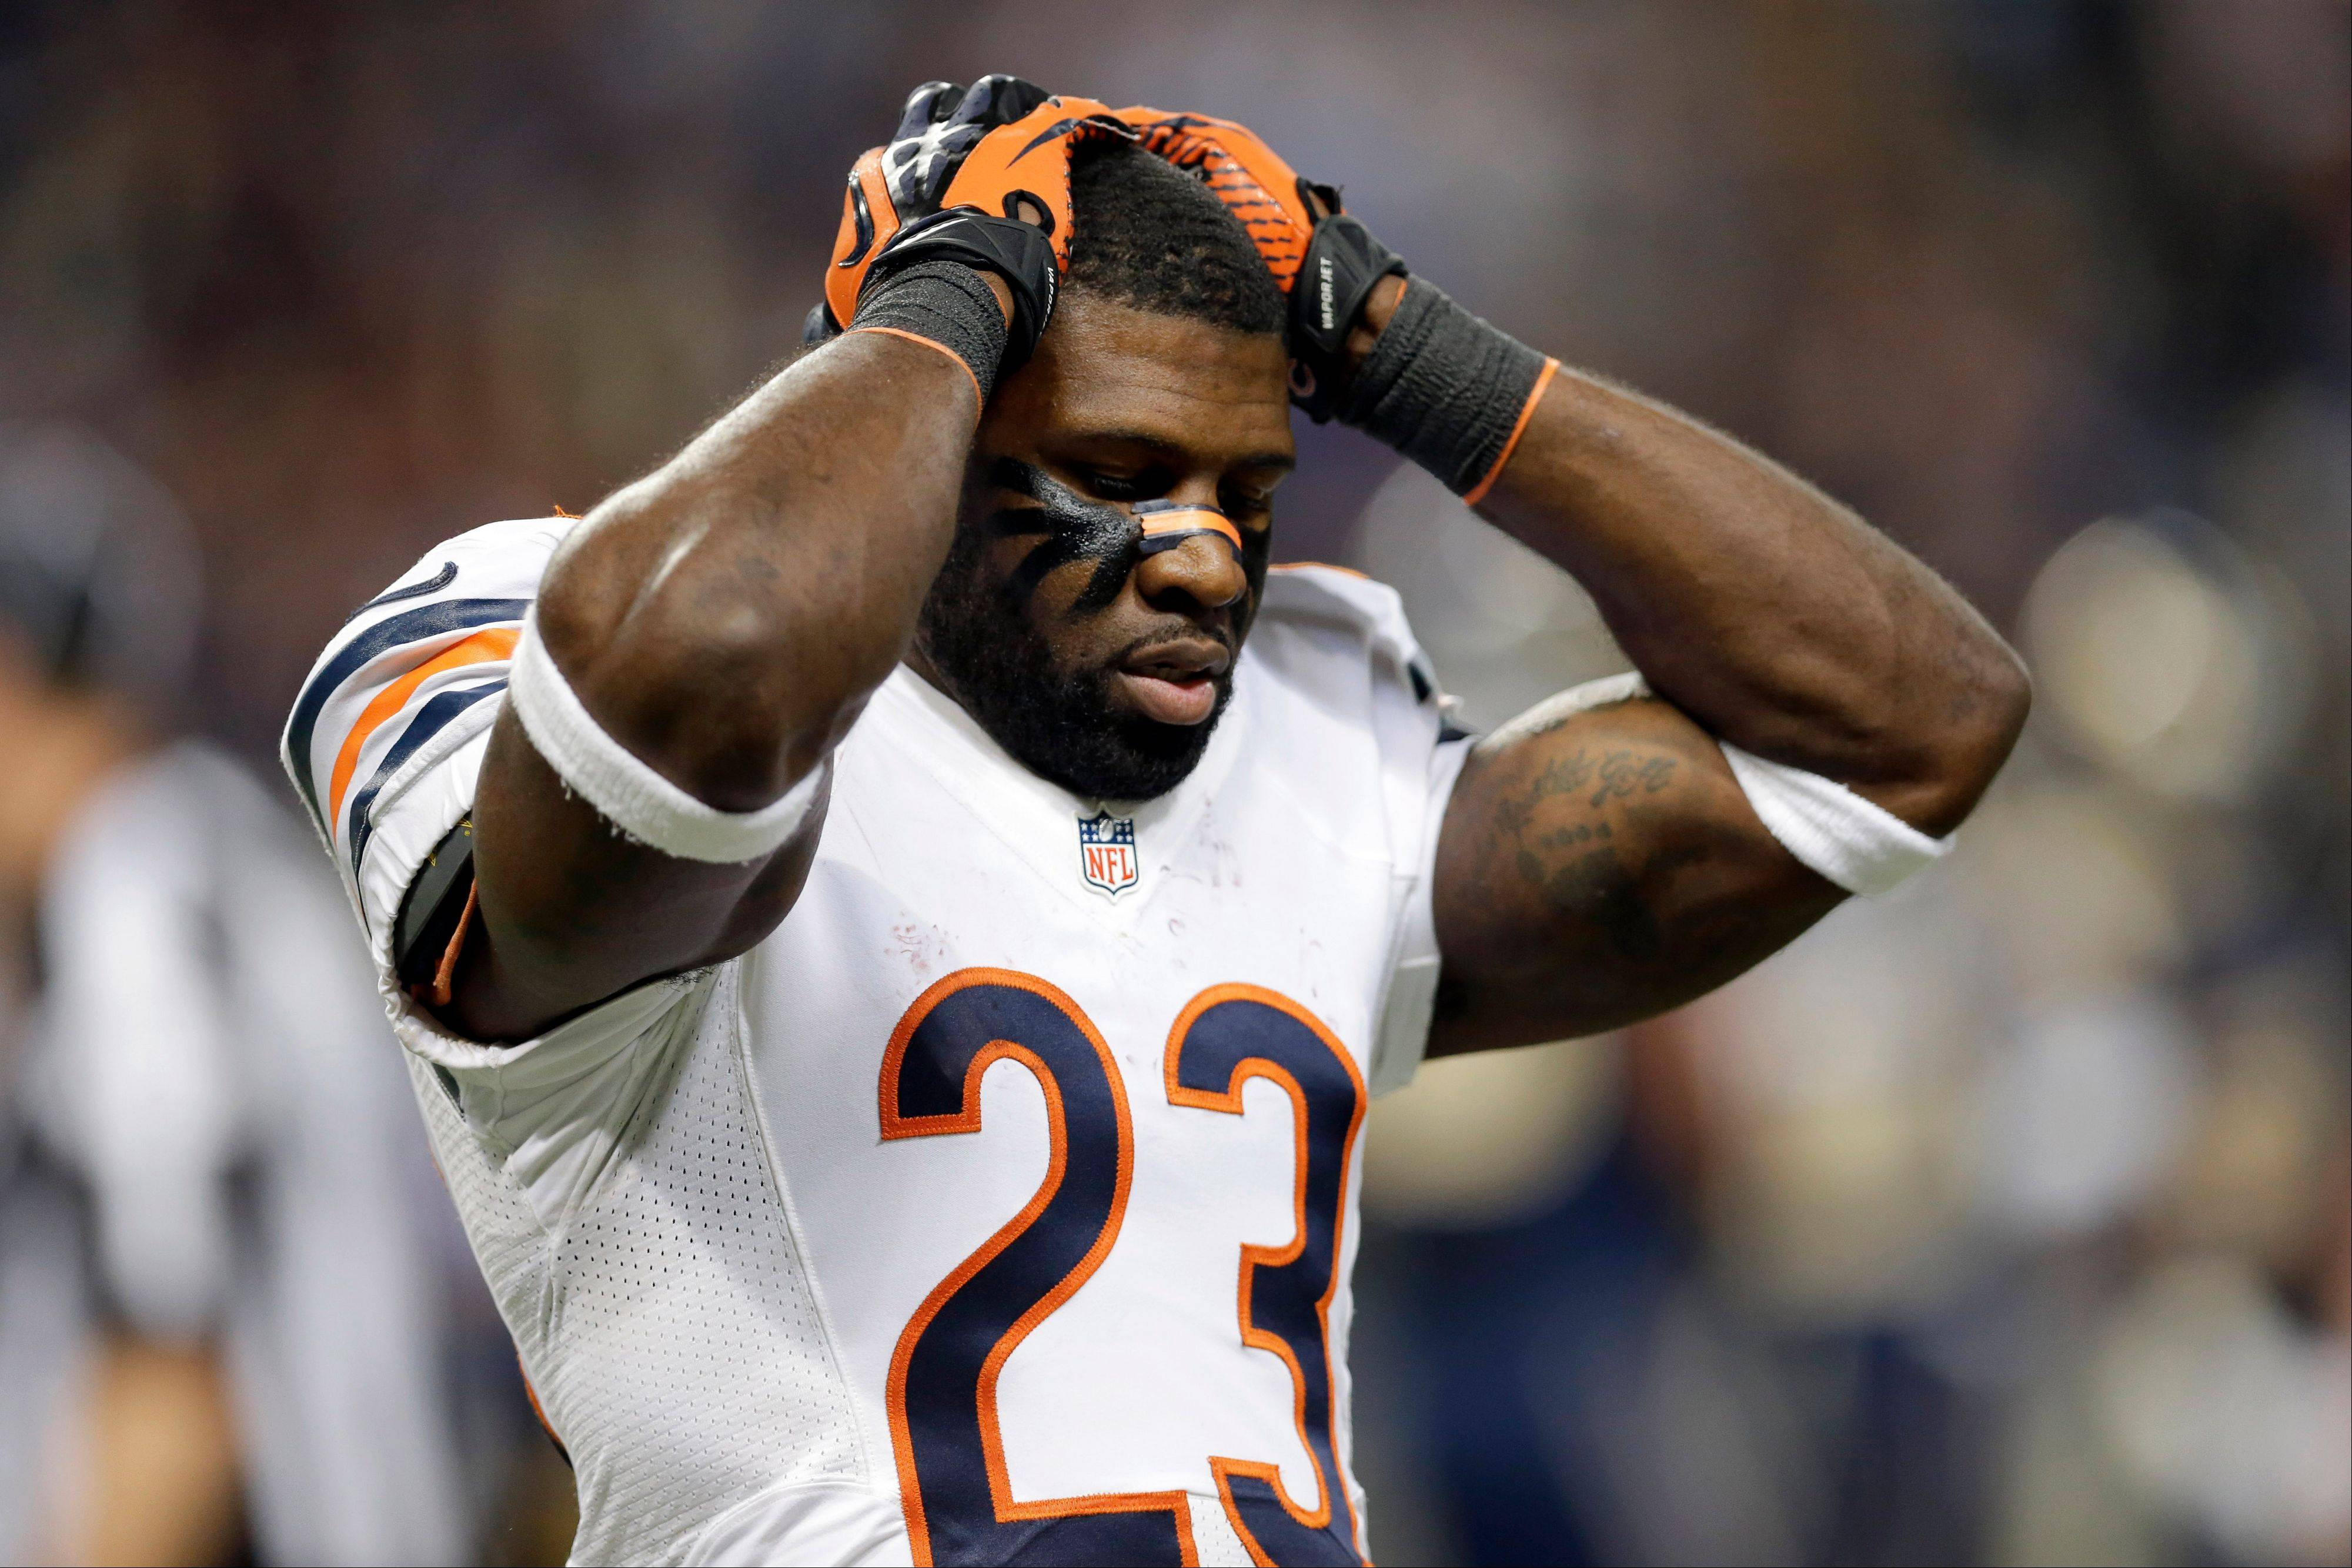 The Bears' Devin Hester reacts after a punt he returned for an apparent touchdown was called back because of an offensive holding penalty during the fourth quarter of an NFL football game against the St. Louis Rams on Sunday, Nov. 24, 2013, in St. Louis.